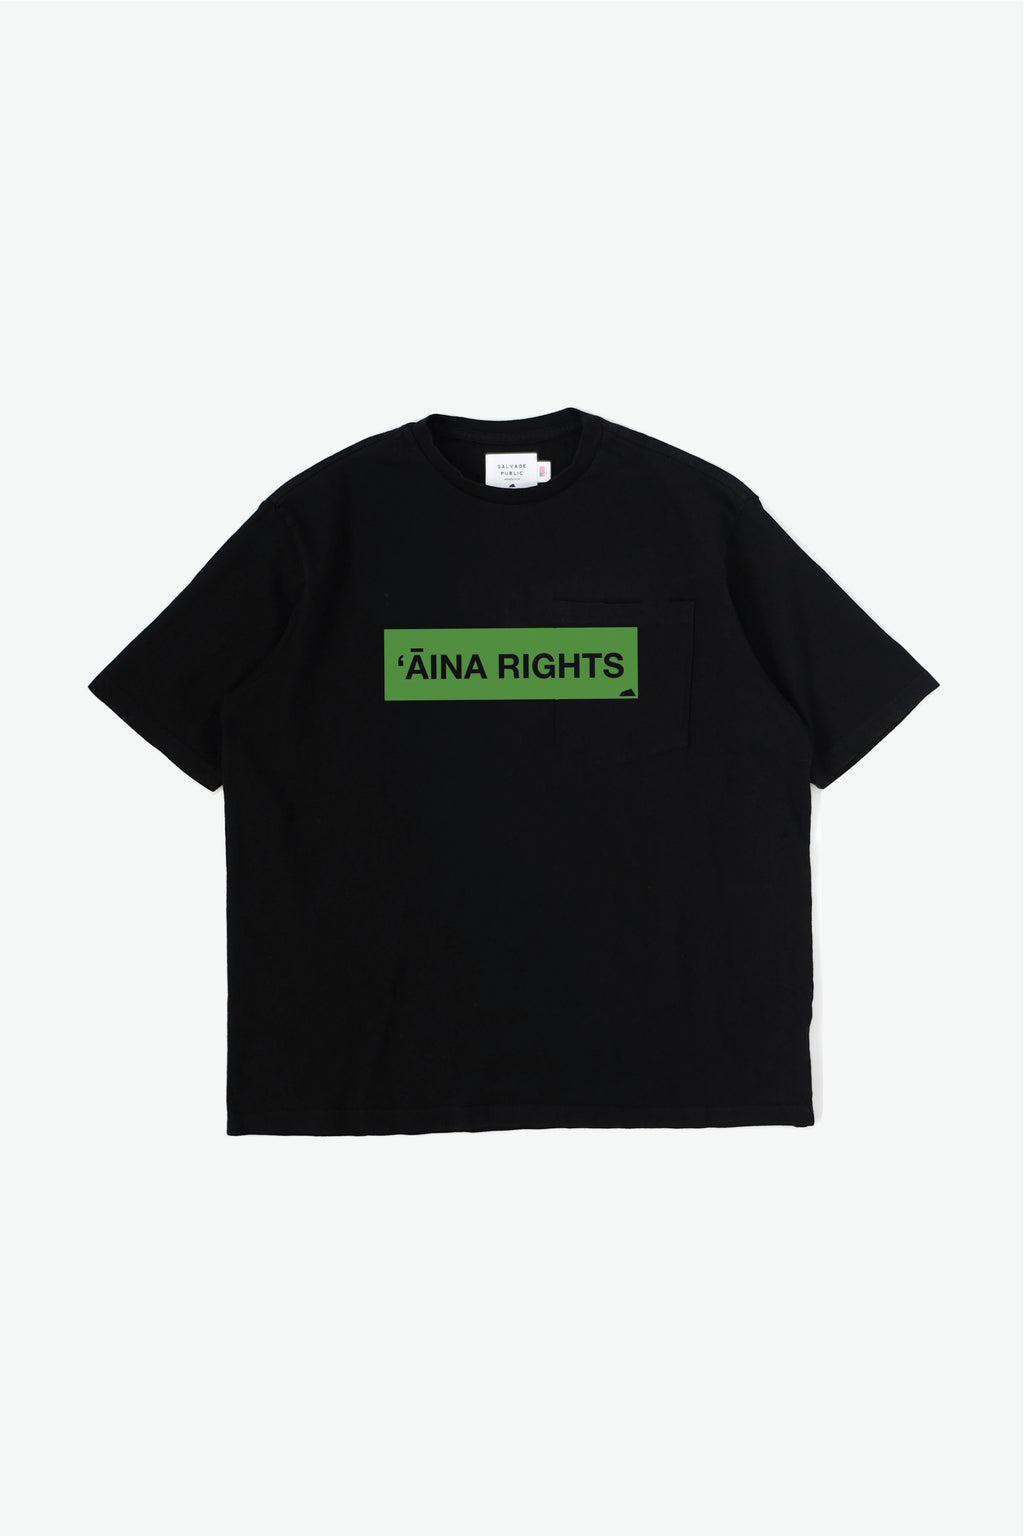 Oversized T-Shirt - 'Āina Rights - Black